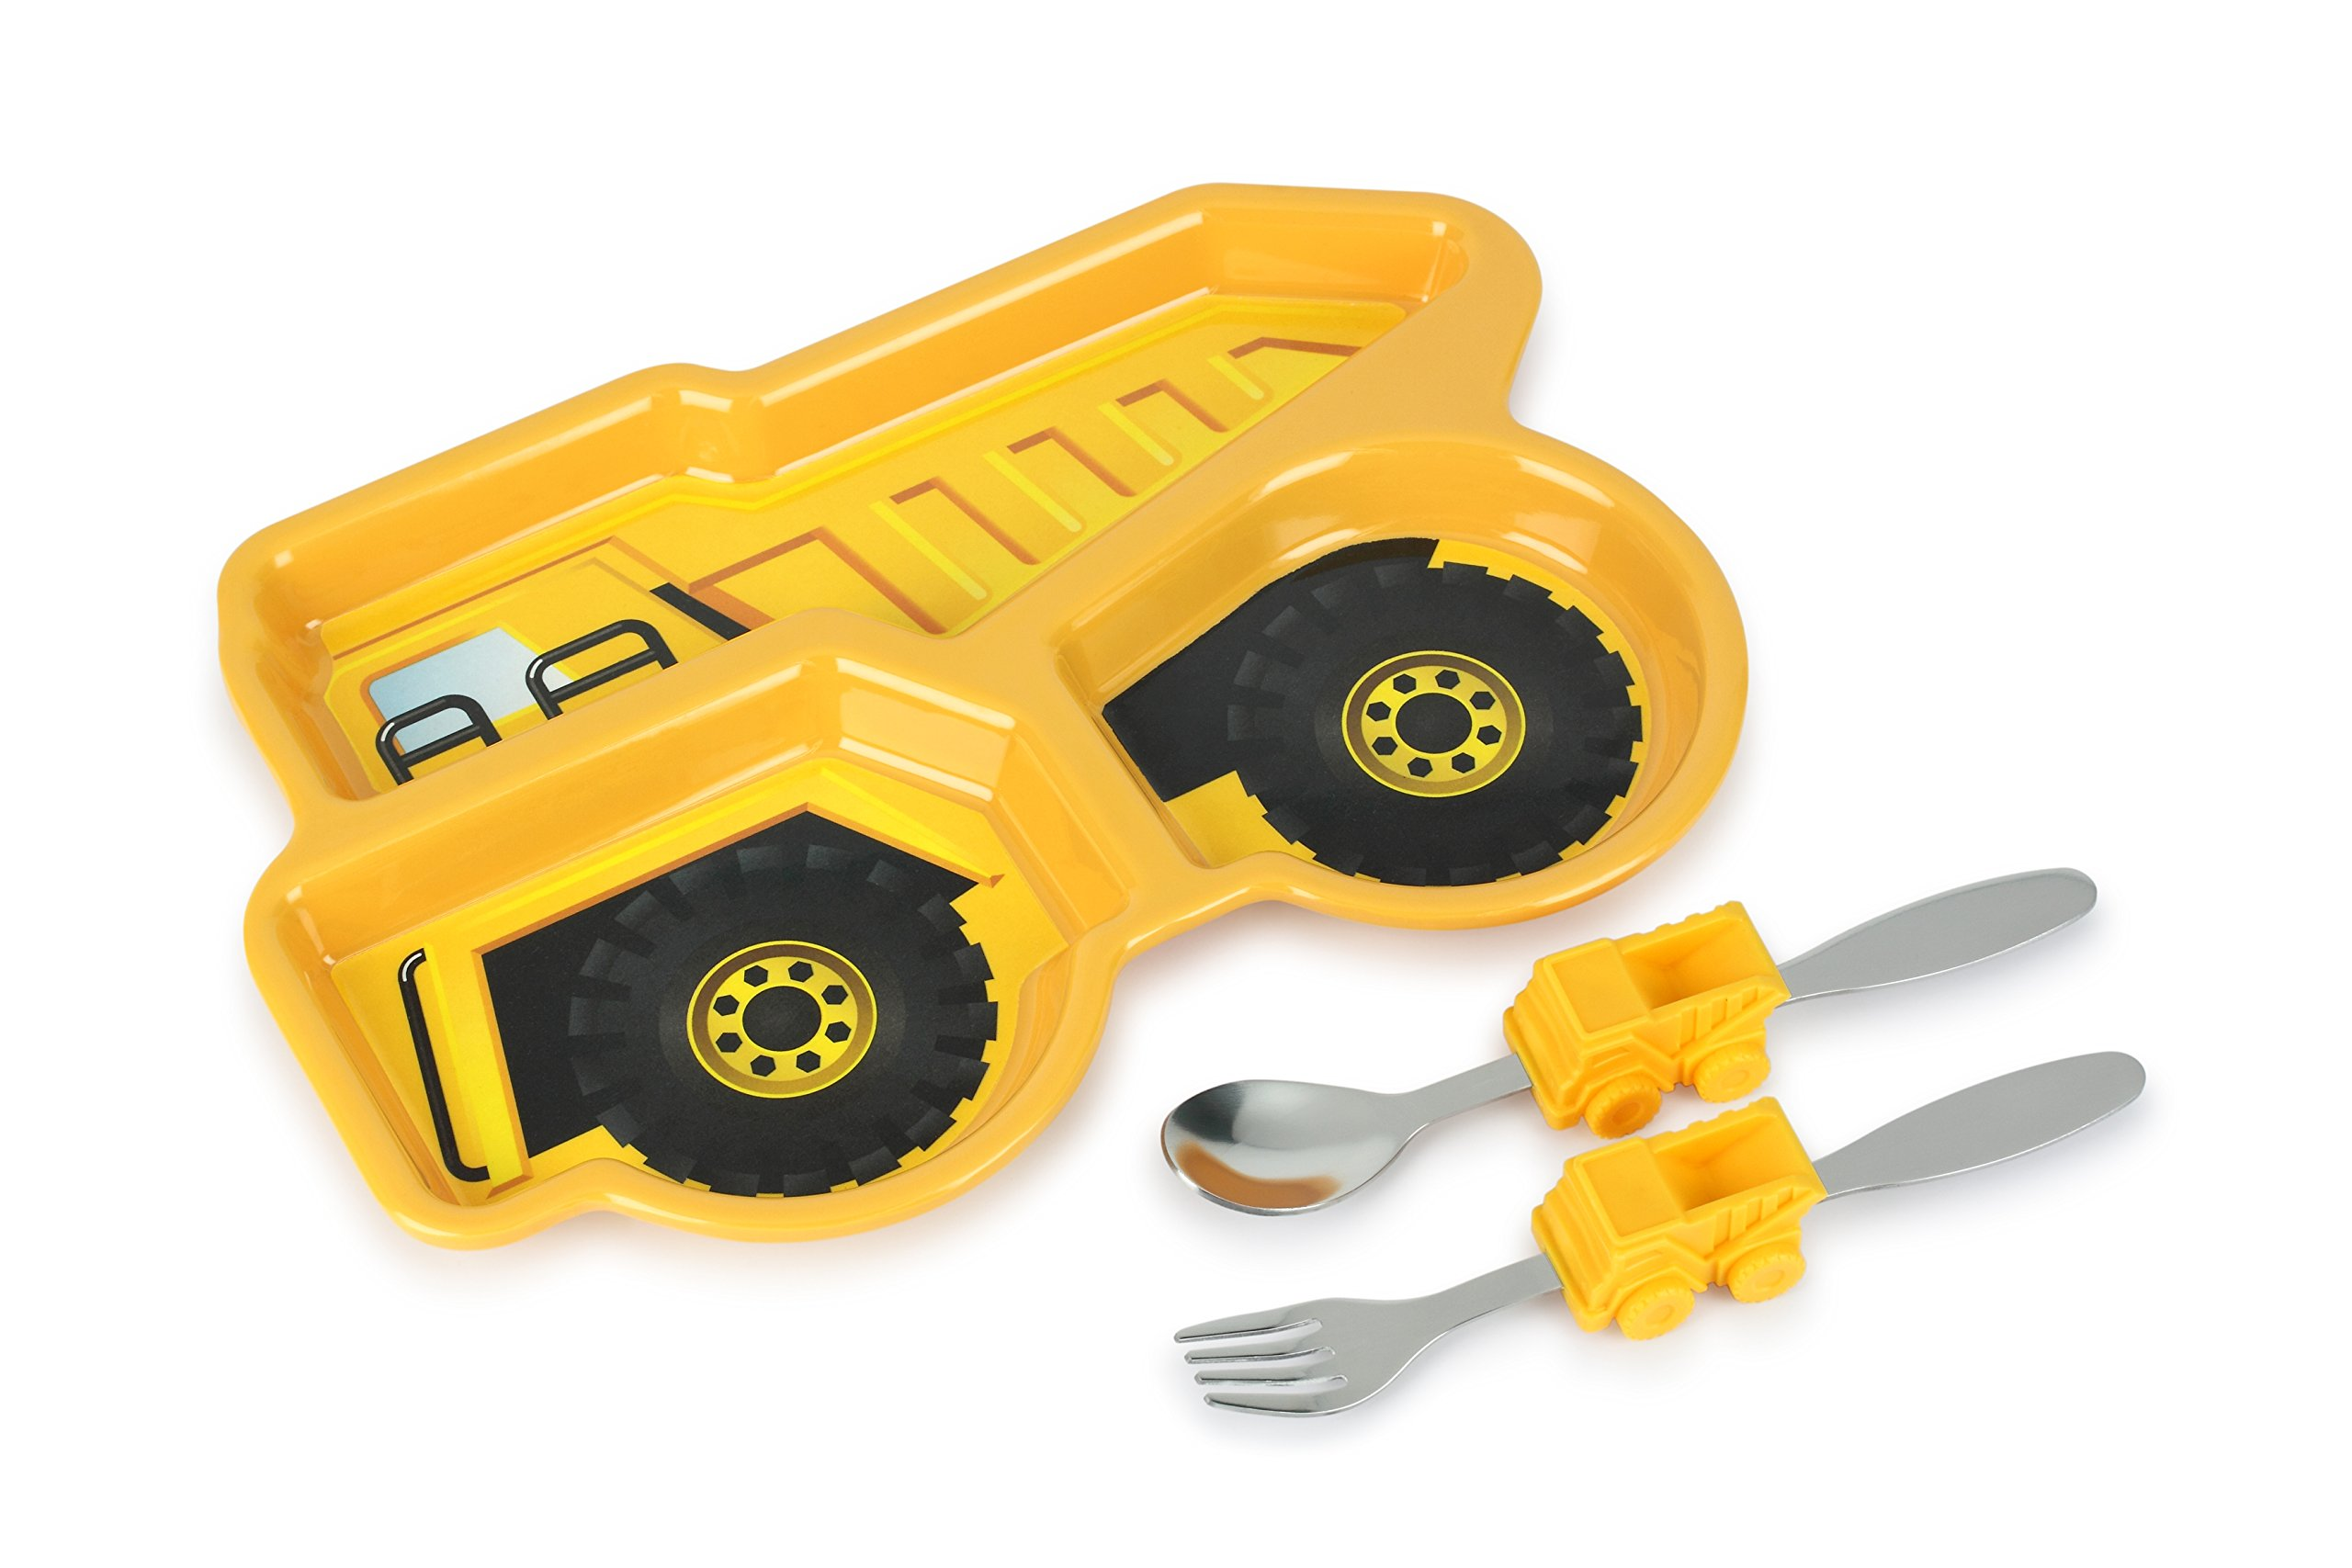 KidsFunwares Me Time Meal Set (Dump Truck) – 3-Piece Set for Kids and Toddlers – Plate, Fork and Spoon that Children Love - Sparks your Child's Imagination & Teaches Portion Control - Dishwasher Safe